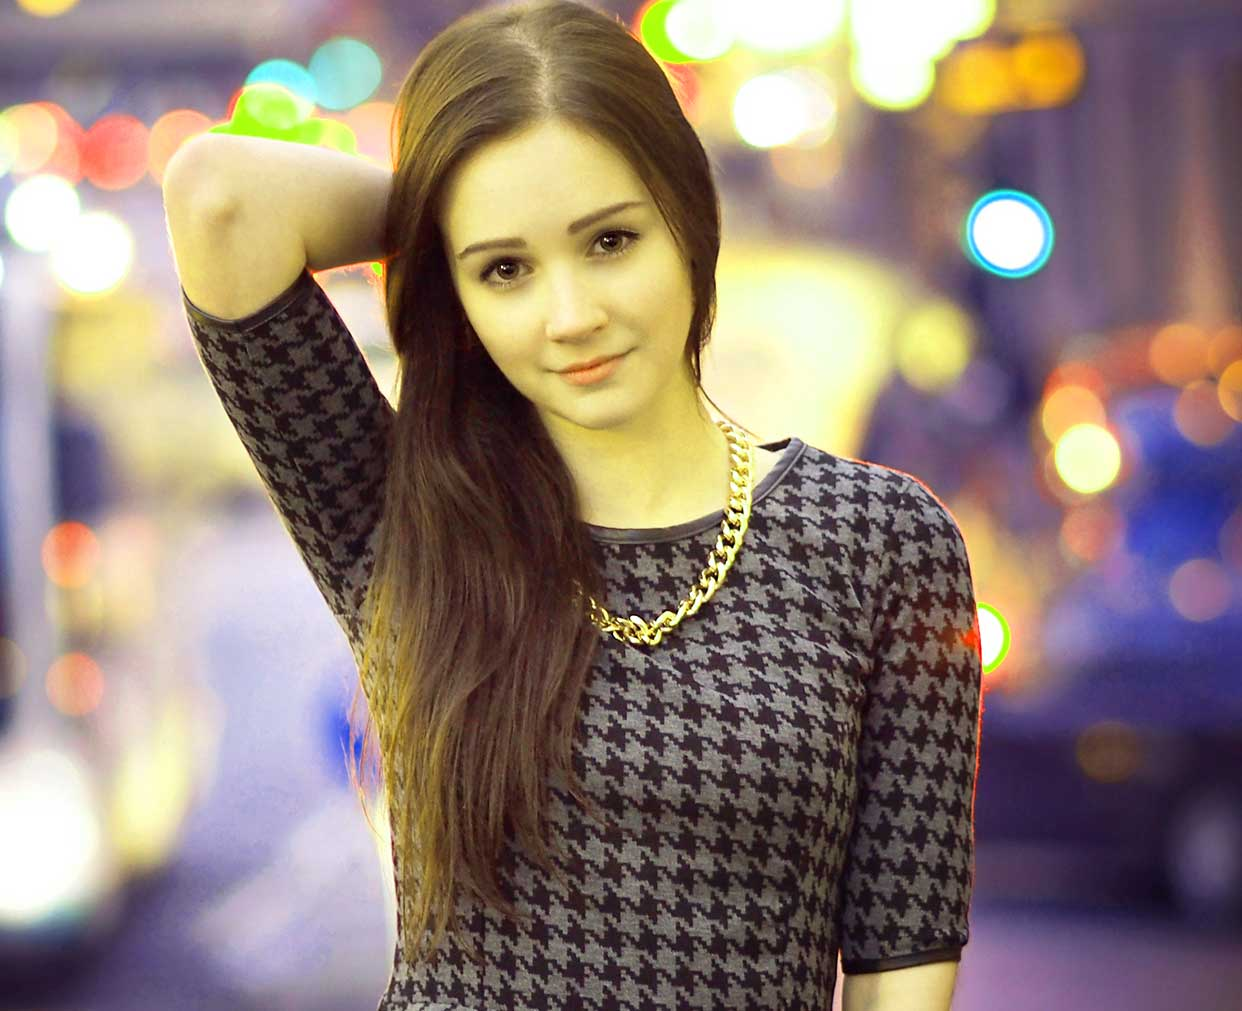 Top Quality very cute beautiful girl images Wallpaper